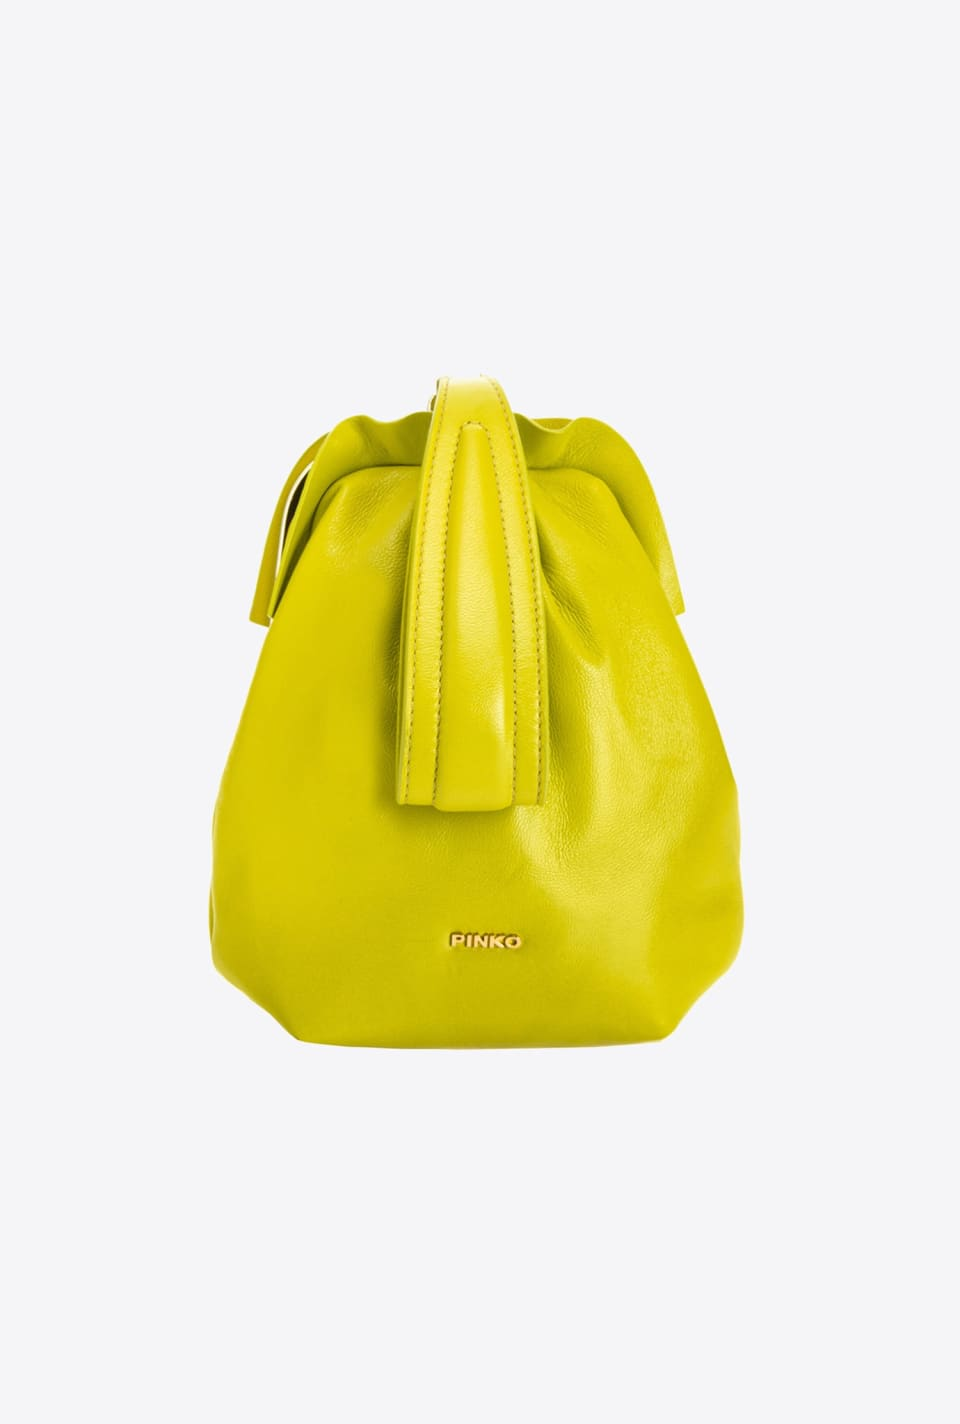 Soft Pouch Bag Fraimed - Pinko